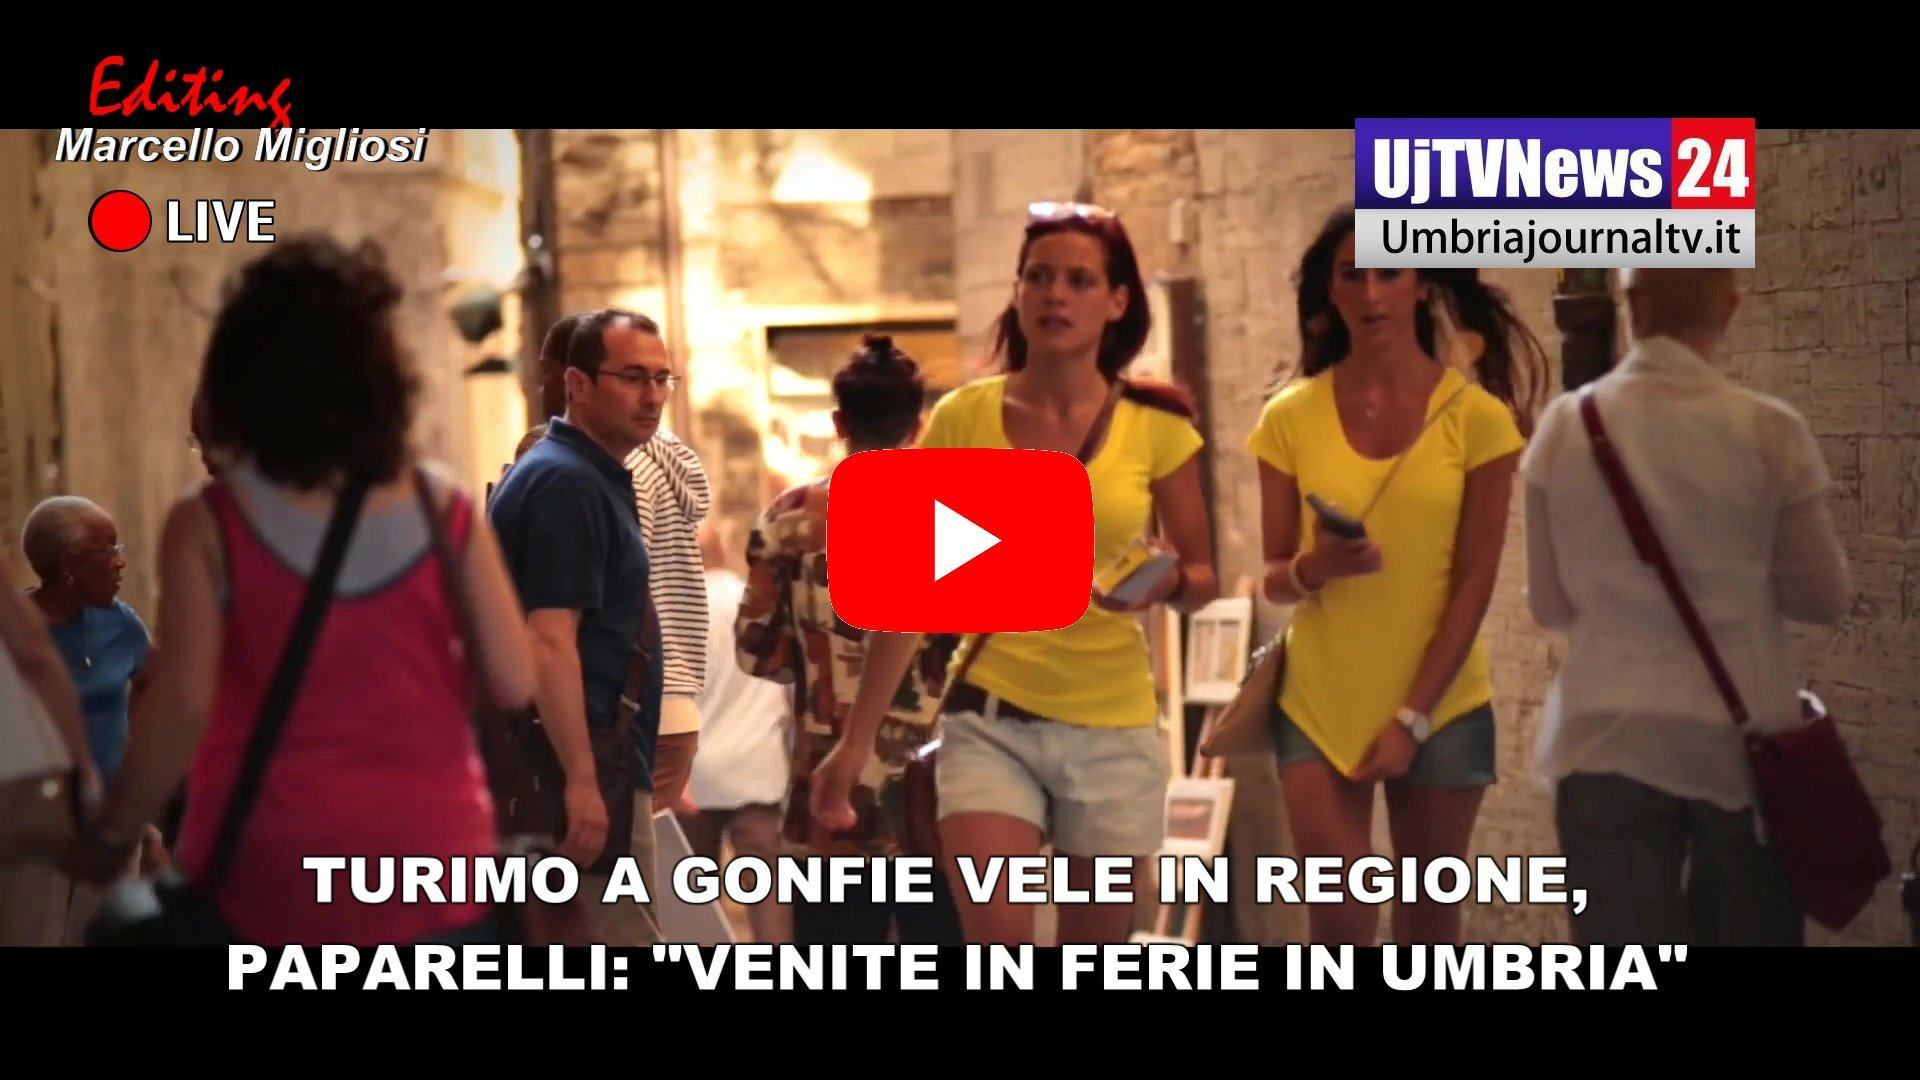 Turismo a gonfie vele in regione, presidente Paparelli invita a fare ferie in Umbria